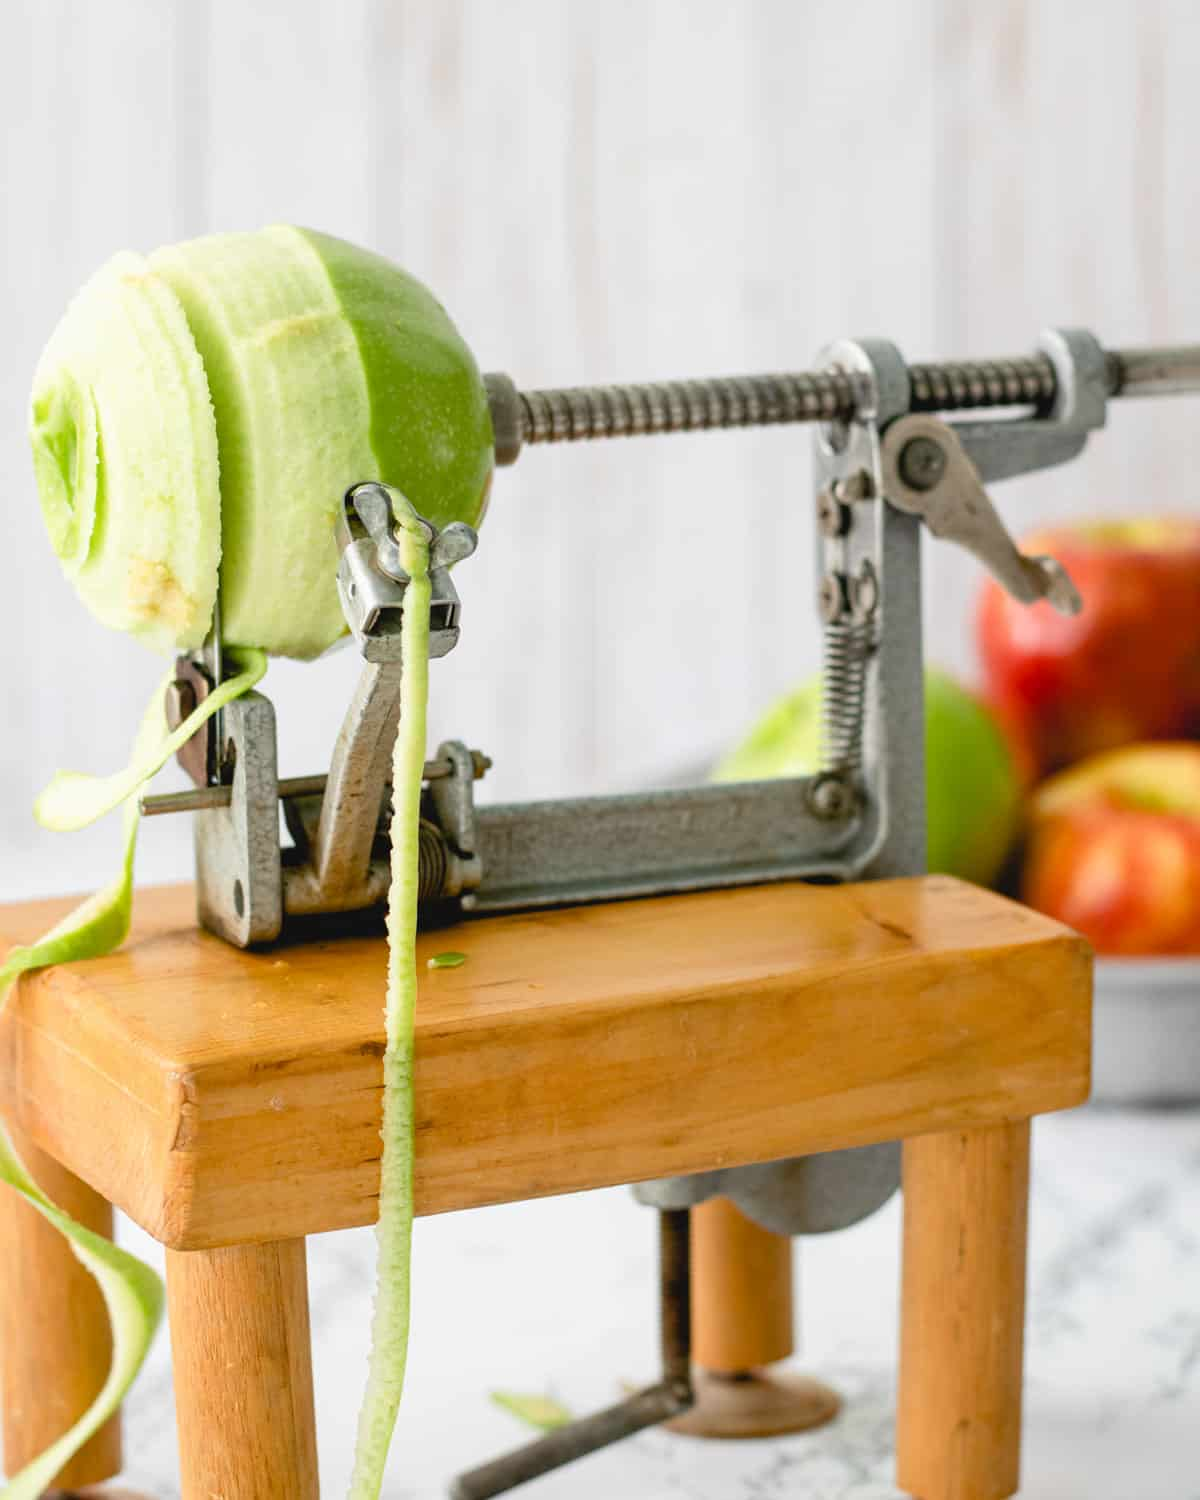 Granny smith apple, half peeled on an apple peeler, corer, slicer.